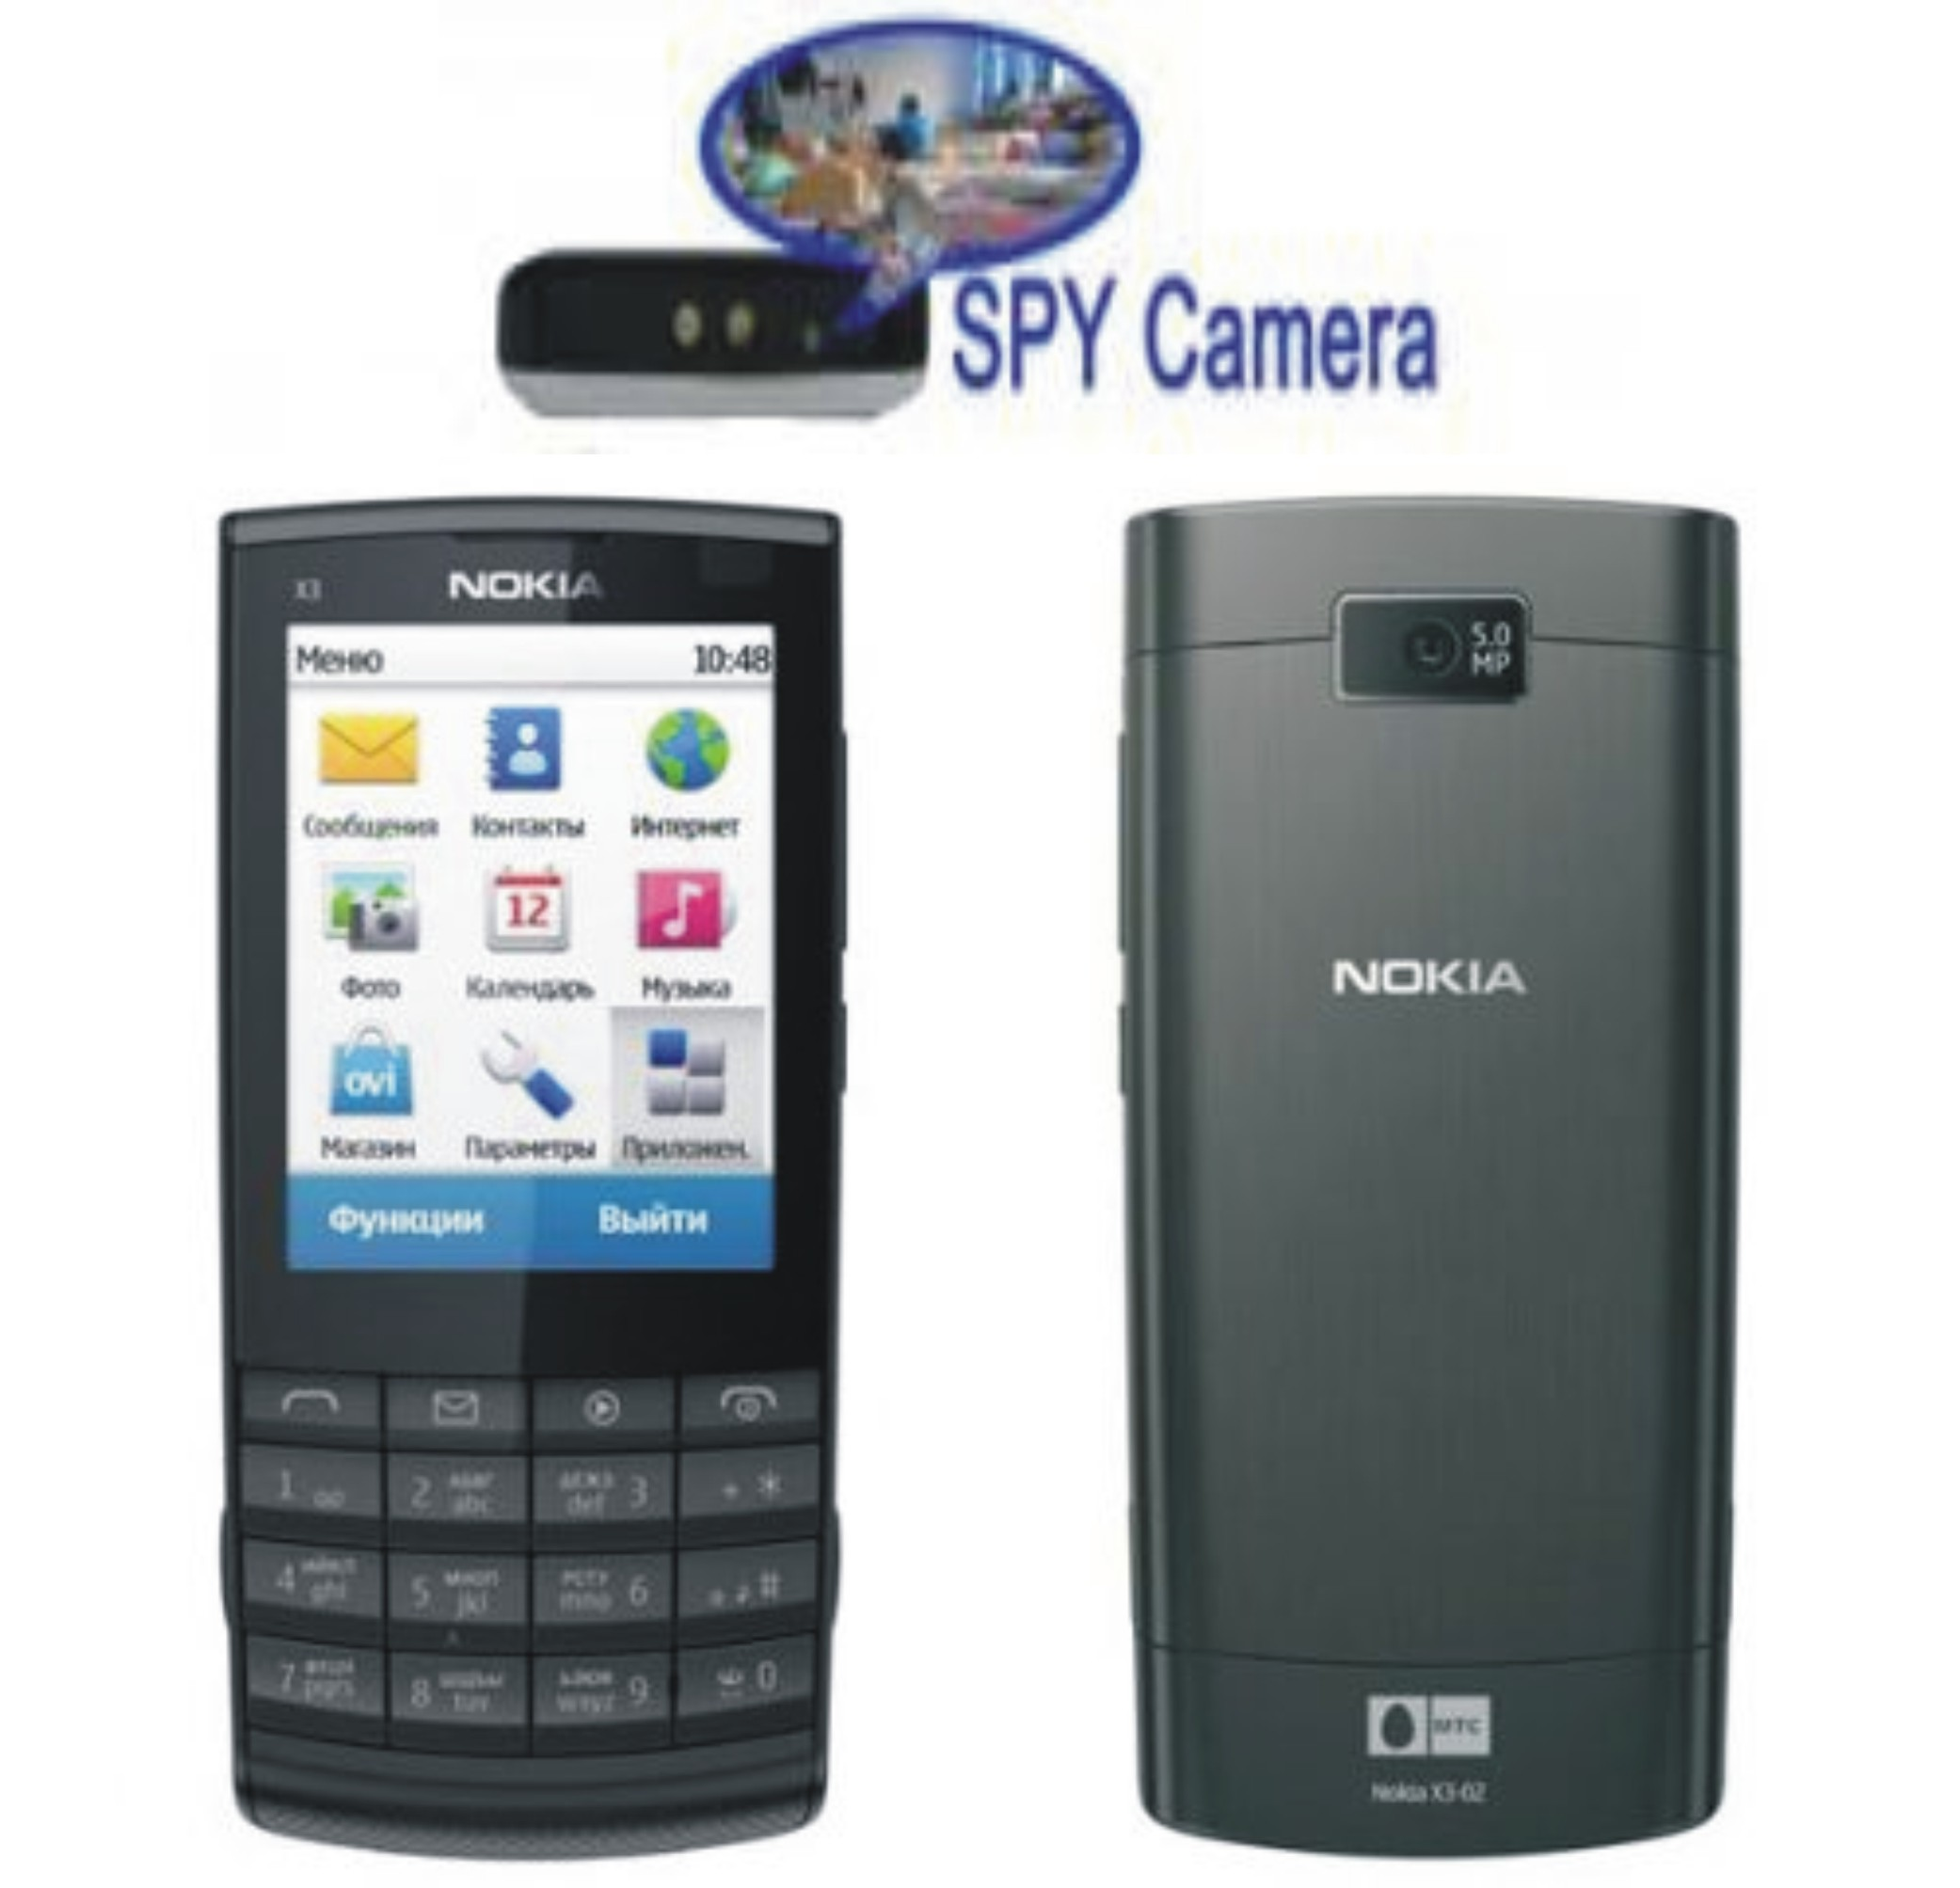 Spy Camera In Nokia Phone Touch Screen In Karnal